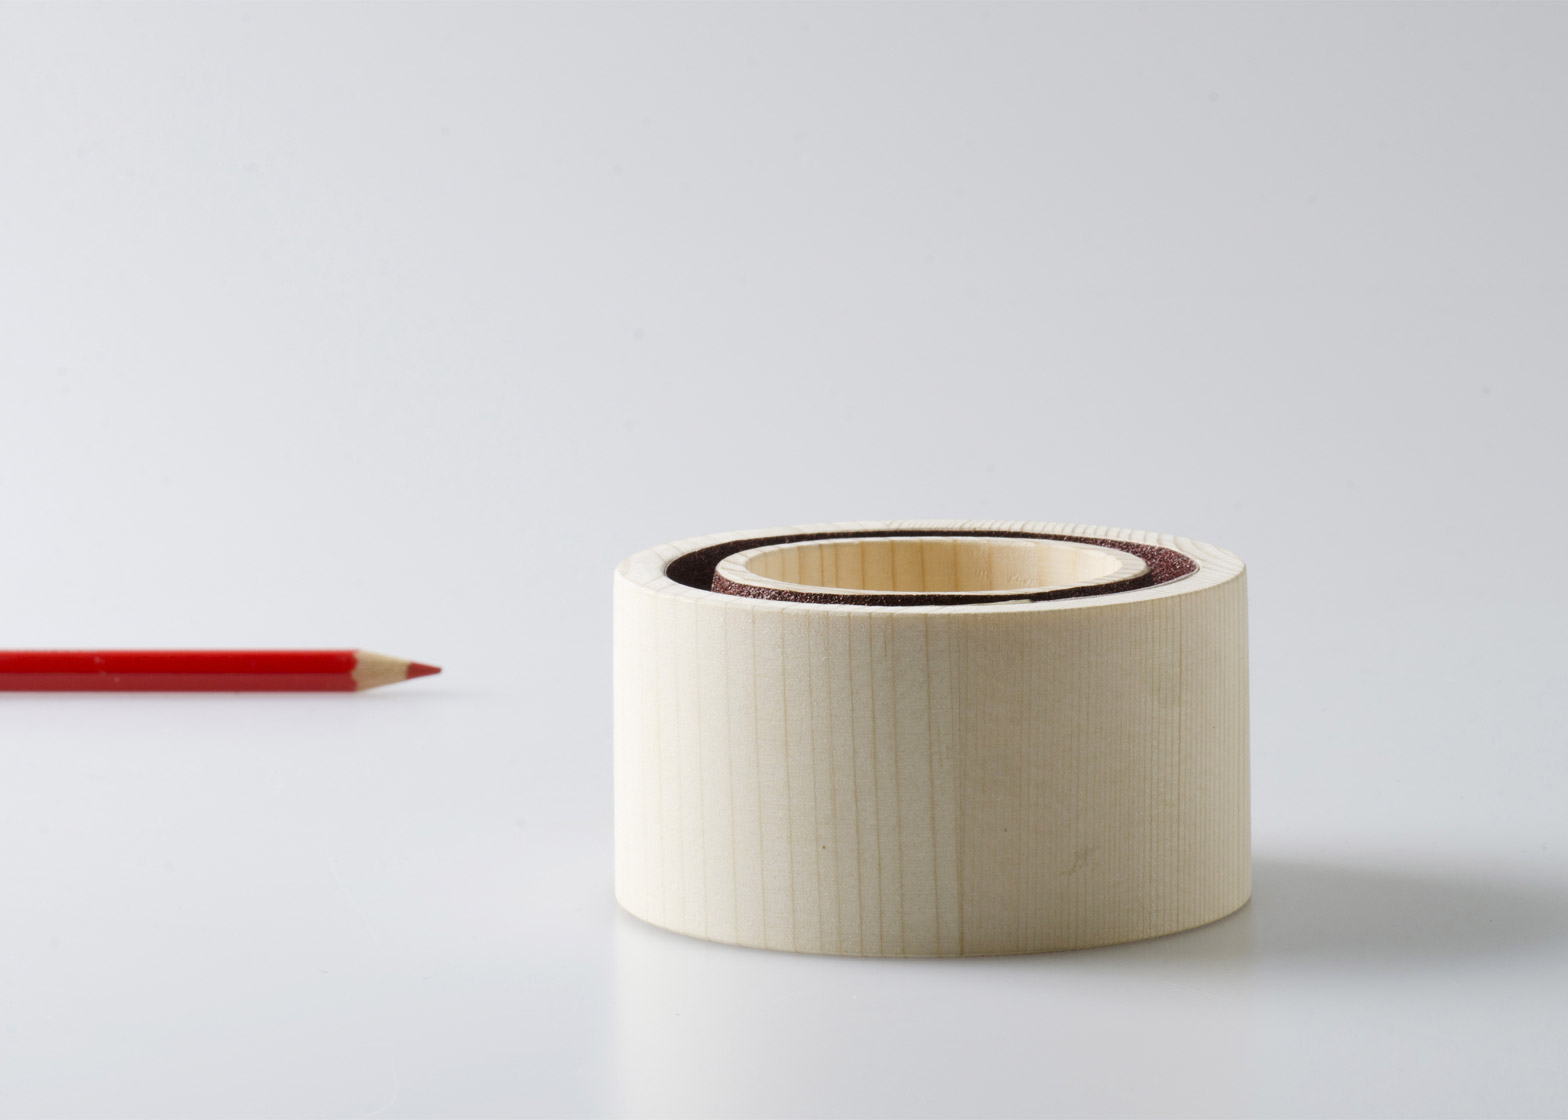 innovative-pencil-sharpeners-hisheji (17)